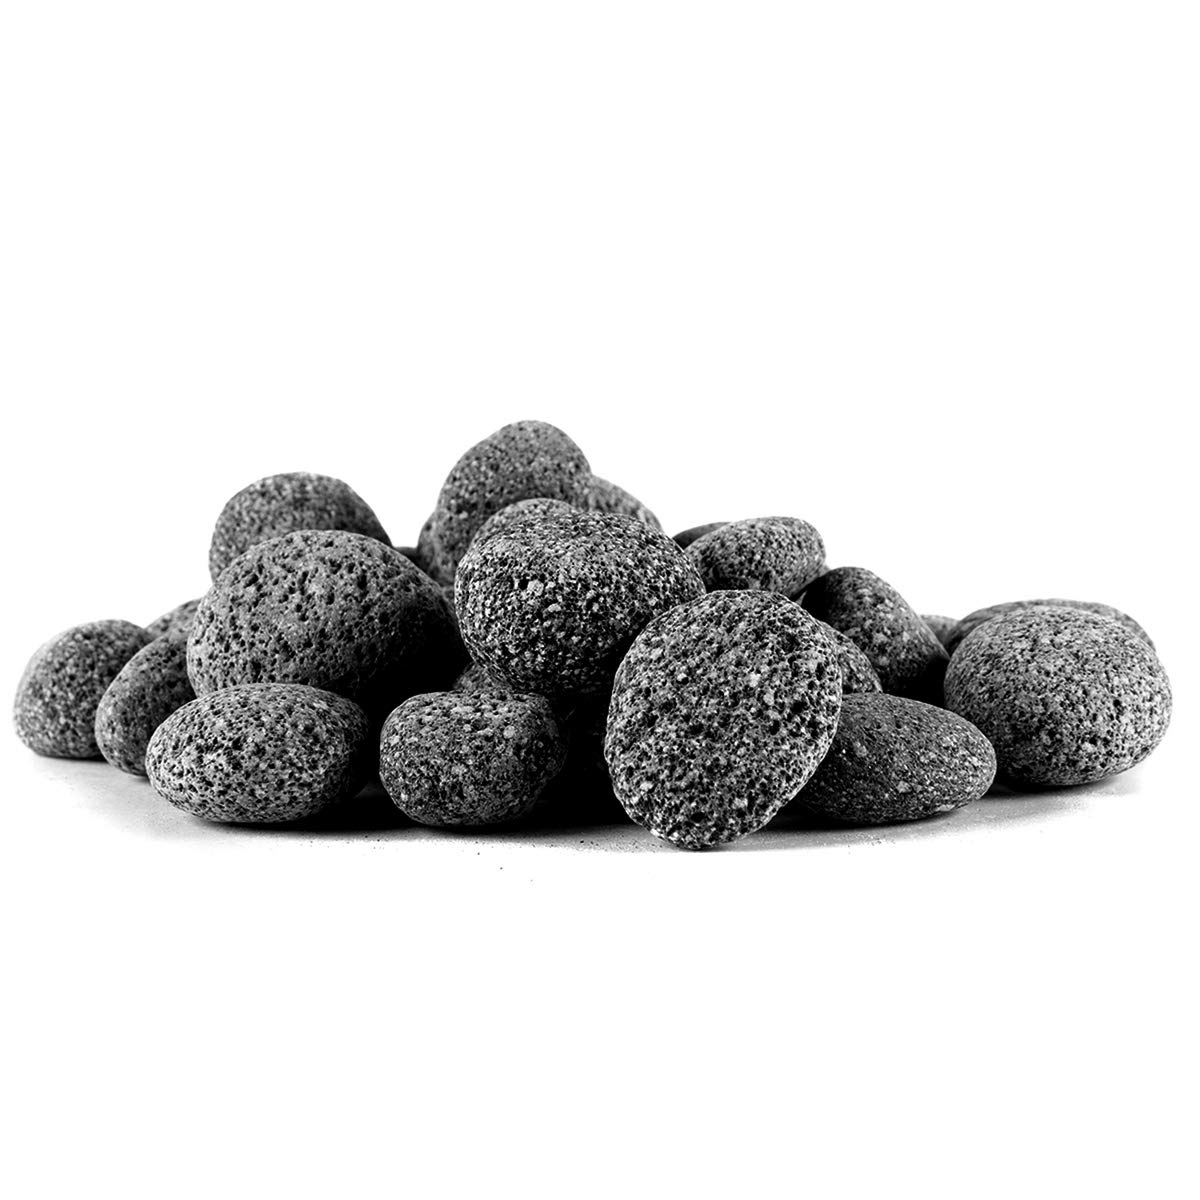 Skyflame Black Natural Tumbled Stones Round Lava Rock Pebbles for Indoor Outdoor Gas Fire Pit | Fireplaces | Garden Landscaping Decoration | Cultivation of Potted Plants | 10 Pounds | 1/2-1 Inch Sized